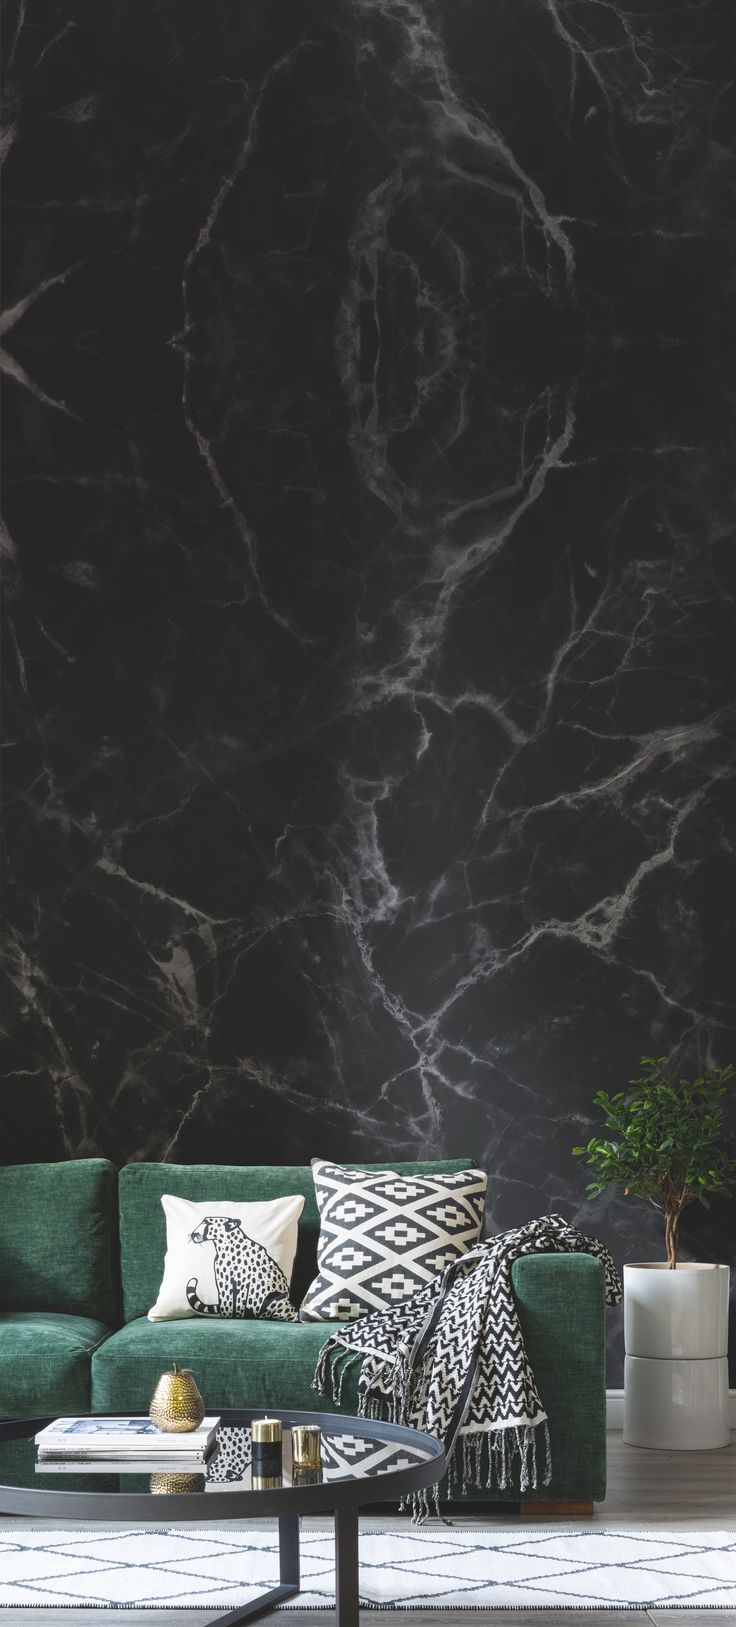 Popular Wallpaper Marble Home Screen - Living-Room-Wallpaper-Inspiration-Add-a-slice-of-luxe-into-your-home-with-this-faux-black-marble-wallpaper-mural  Image_896410.jpg